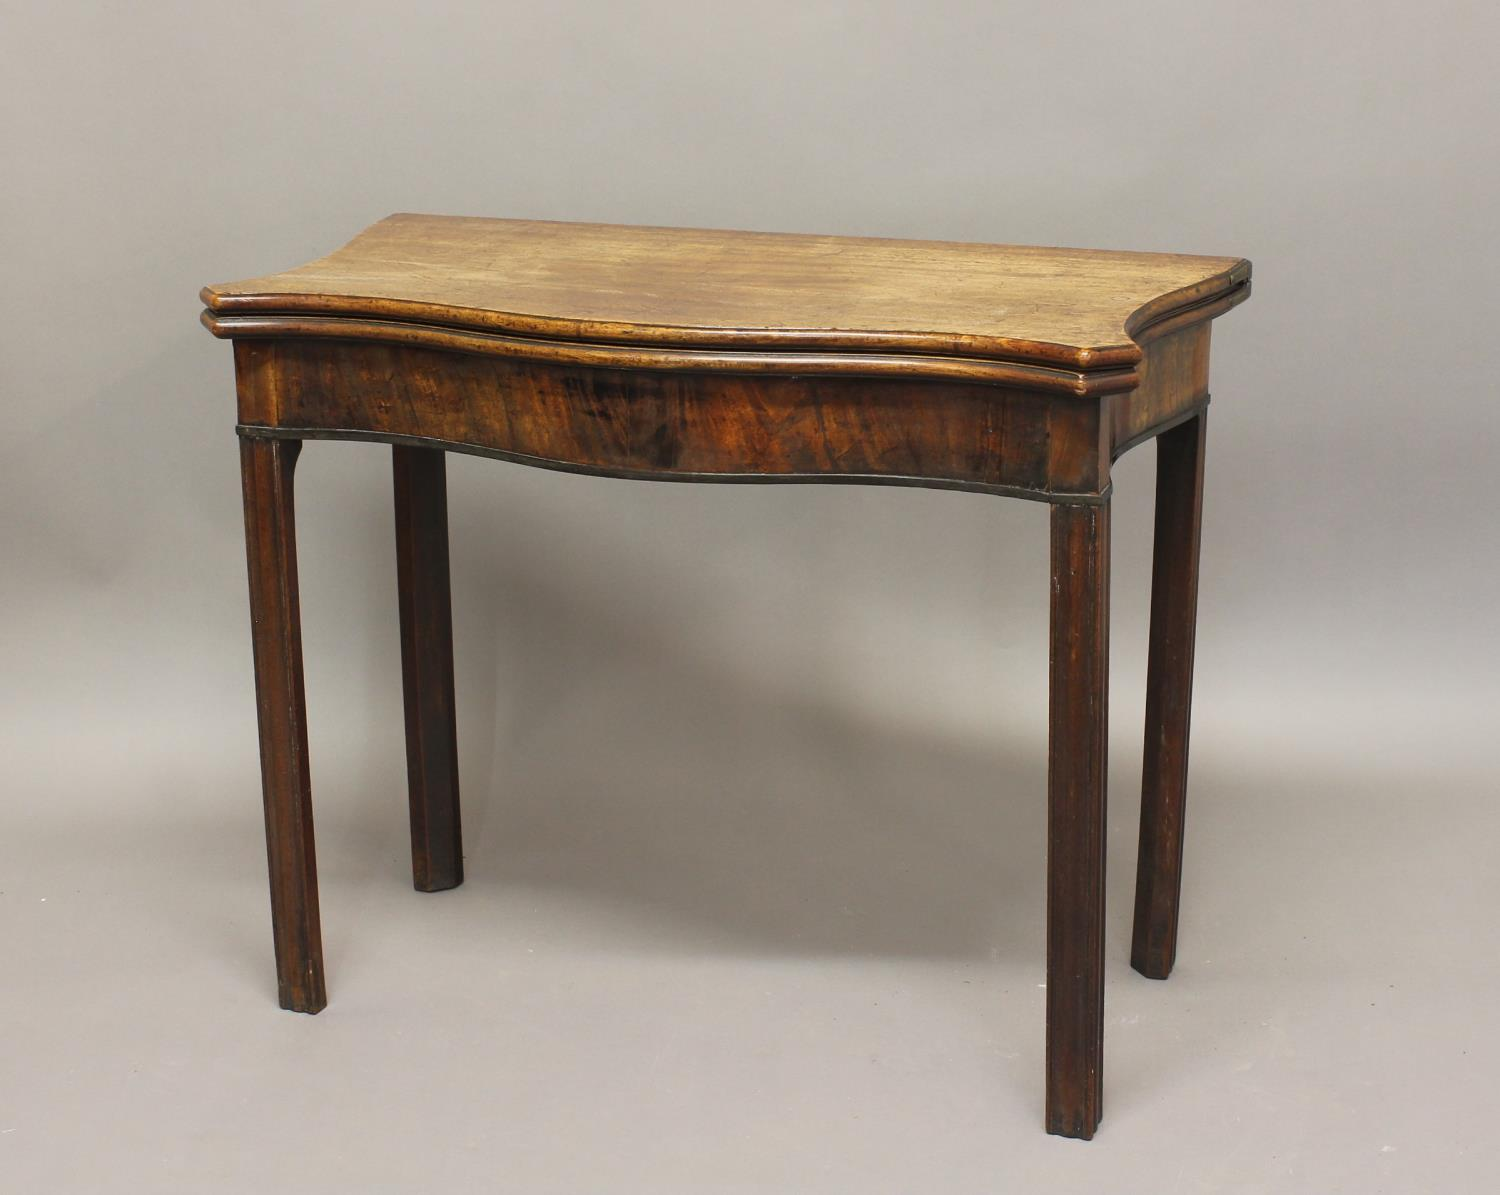 A GEORGE III MAHOGANY TEA TABLE. The serpentine fronted top with shaped sides, enclosing a